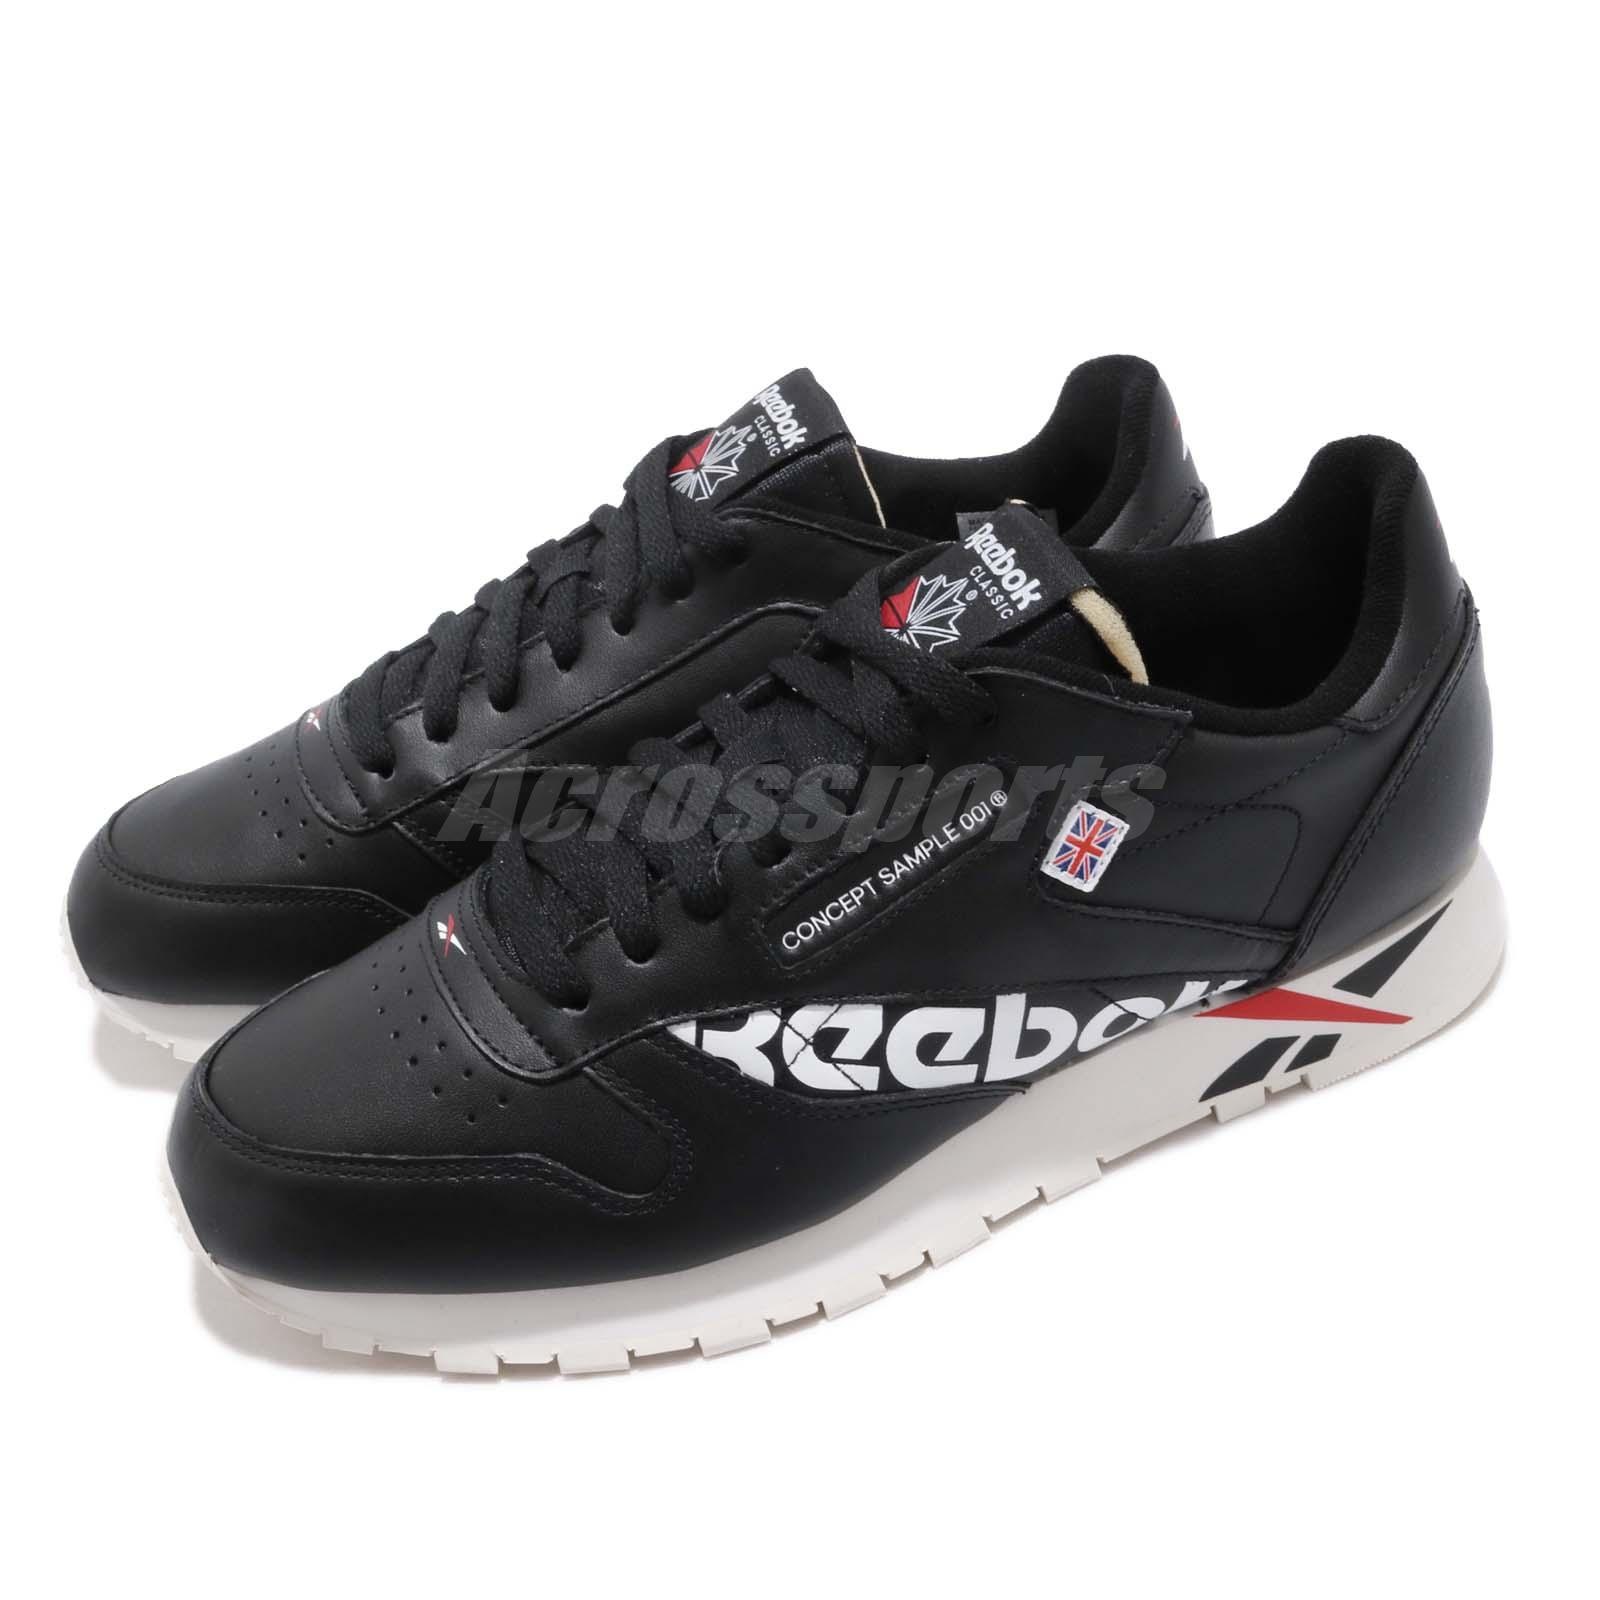 adeaa339ce8 Details about Reebok Classic Leather Altered MU Black White Red Men Shoes  Sneakers DV5016